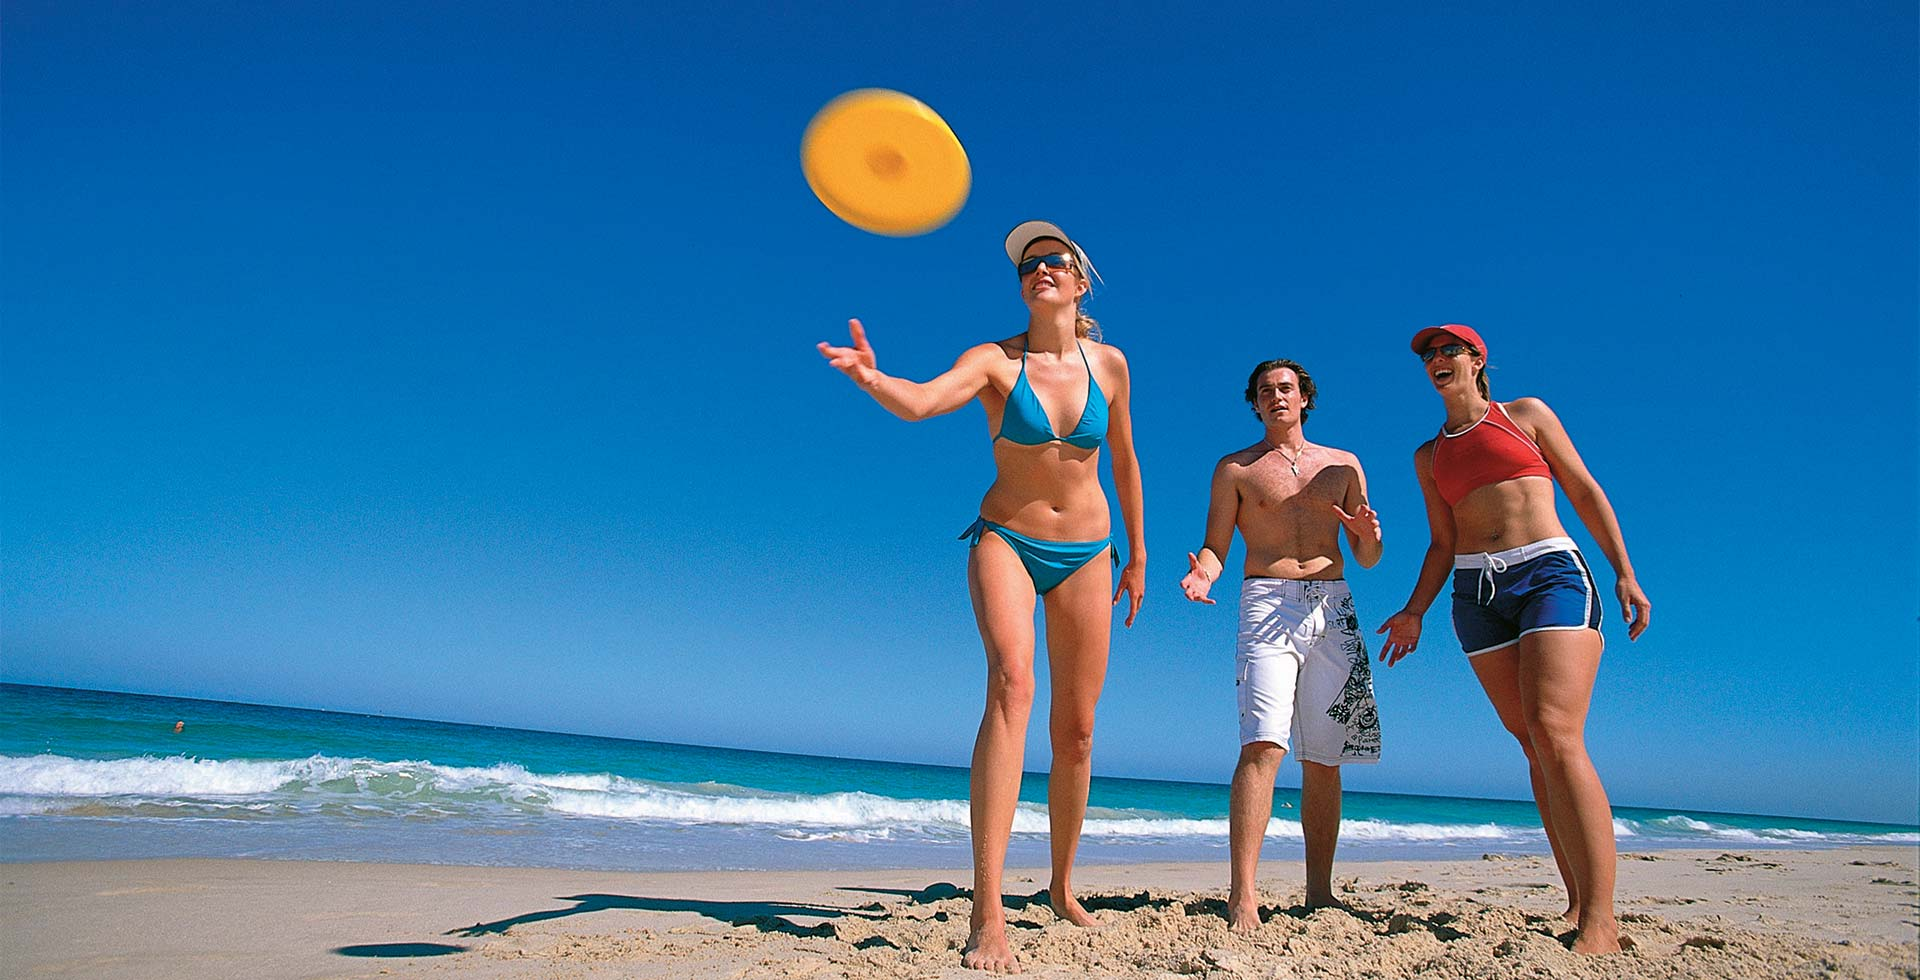 Enjoy the Perth beach lifestyle and culture at City Beach